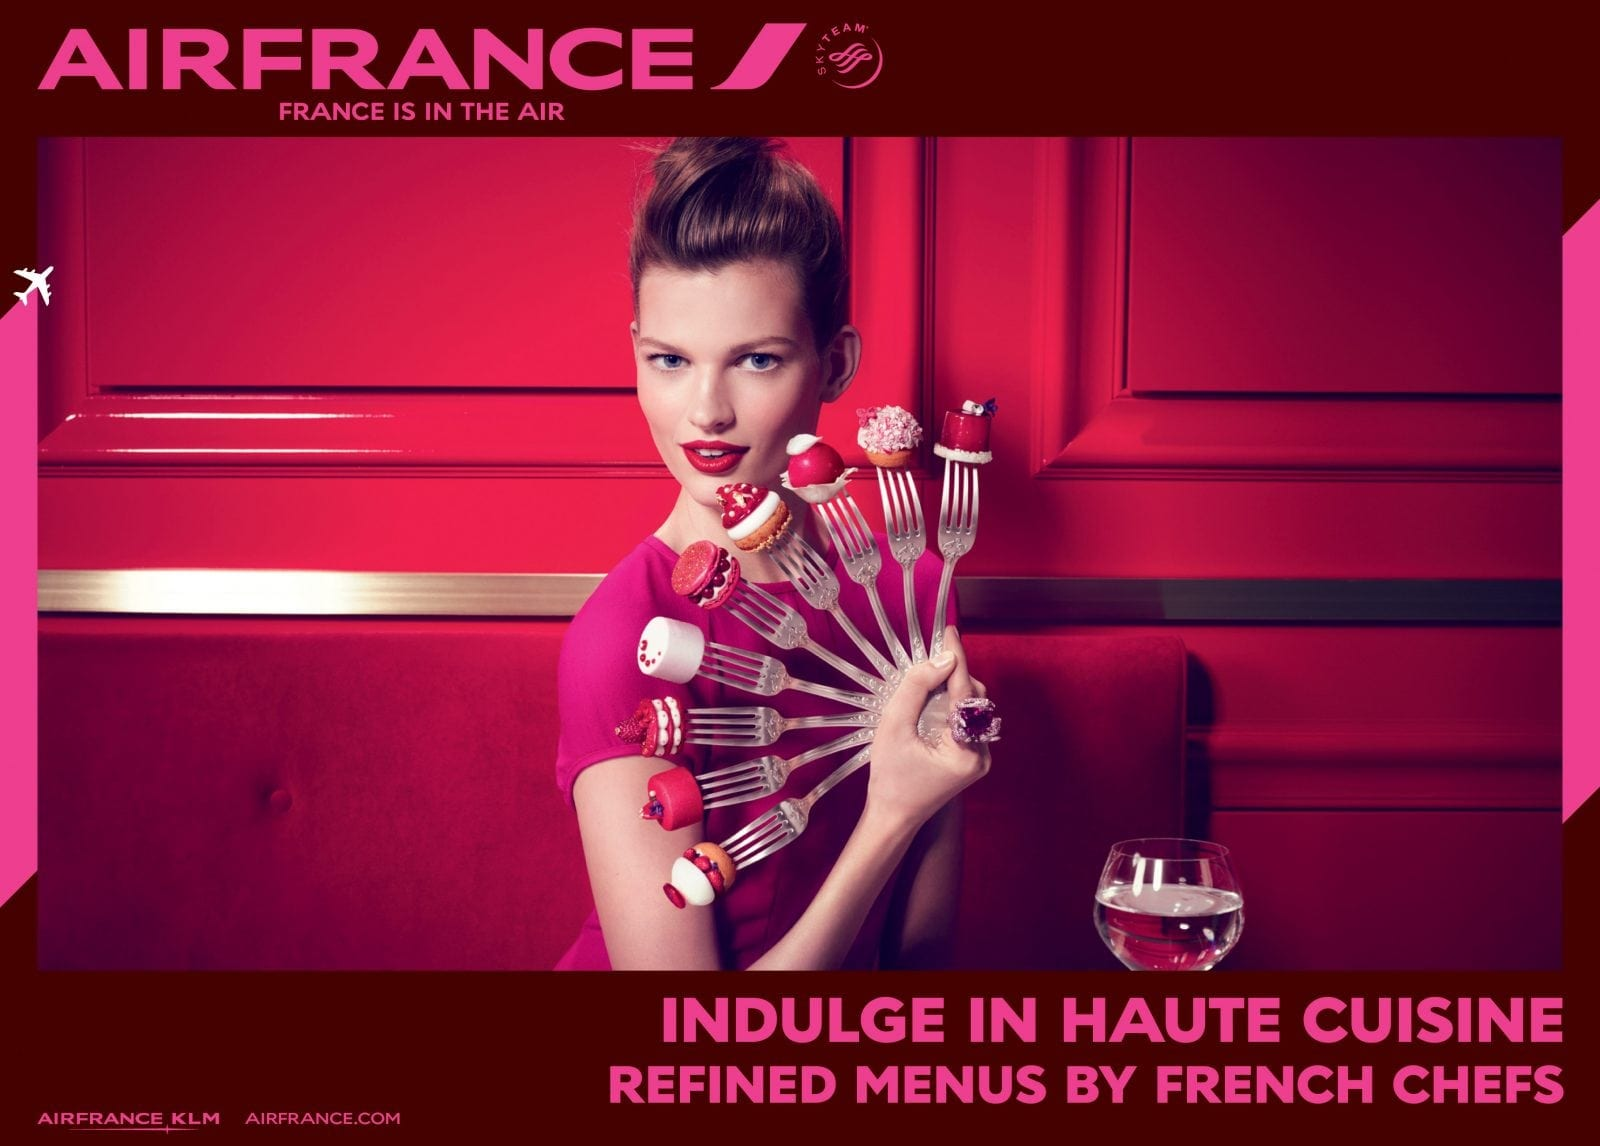 """France is in the air Gastronomy 01 - """"Air France, France is in the air"""""""